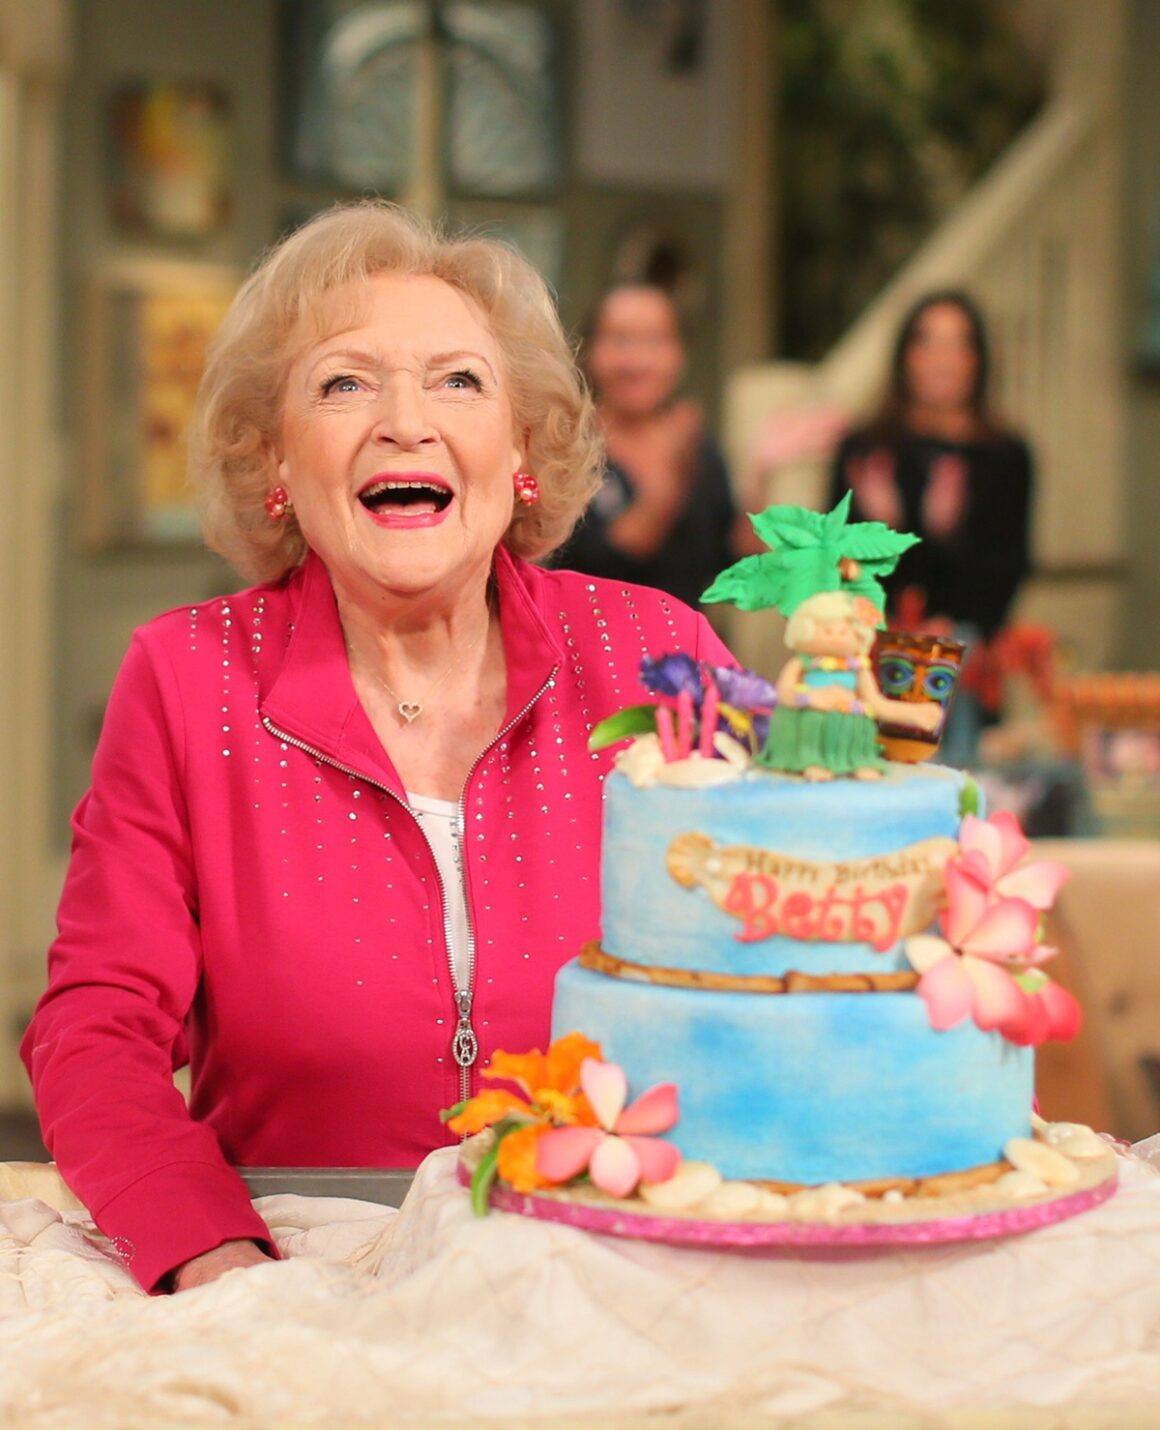 """Betty White Celebrates 93rd Birthday On The Set Of """"Hot in Cleveland"""""""